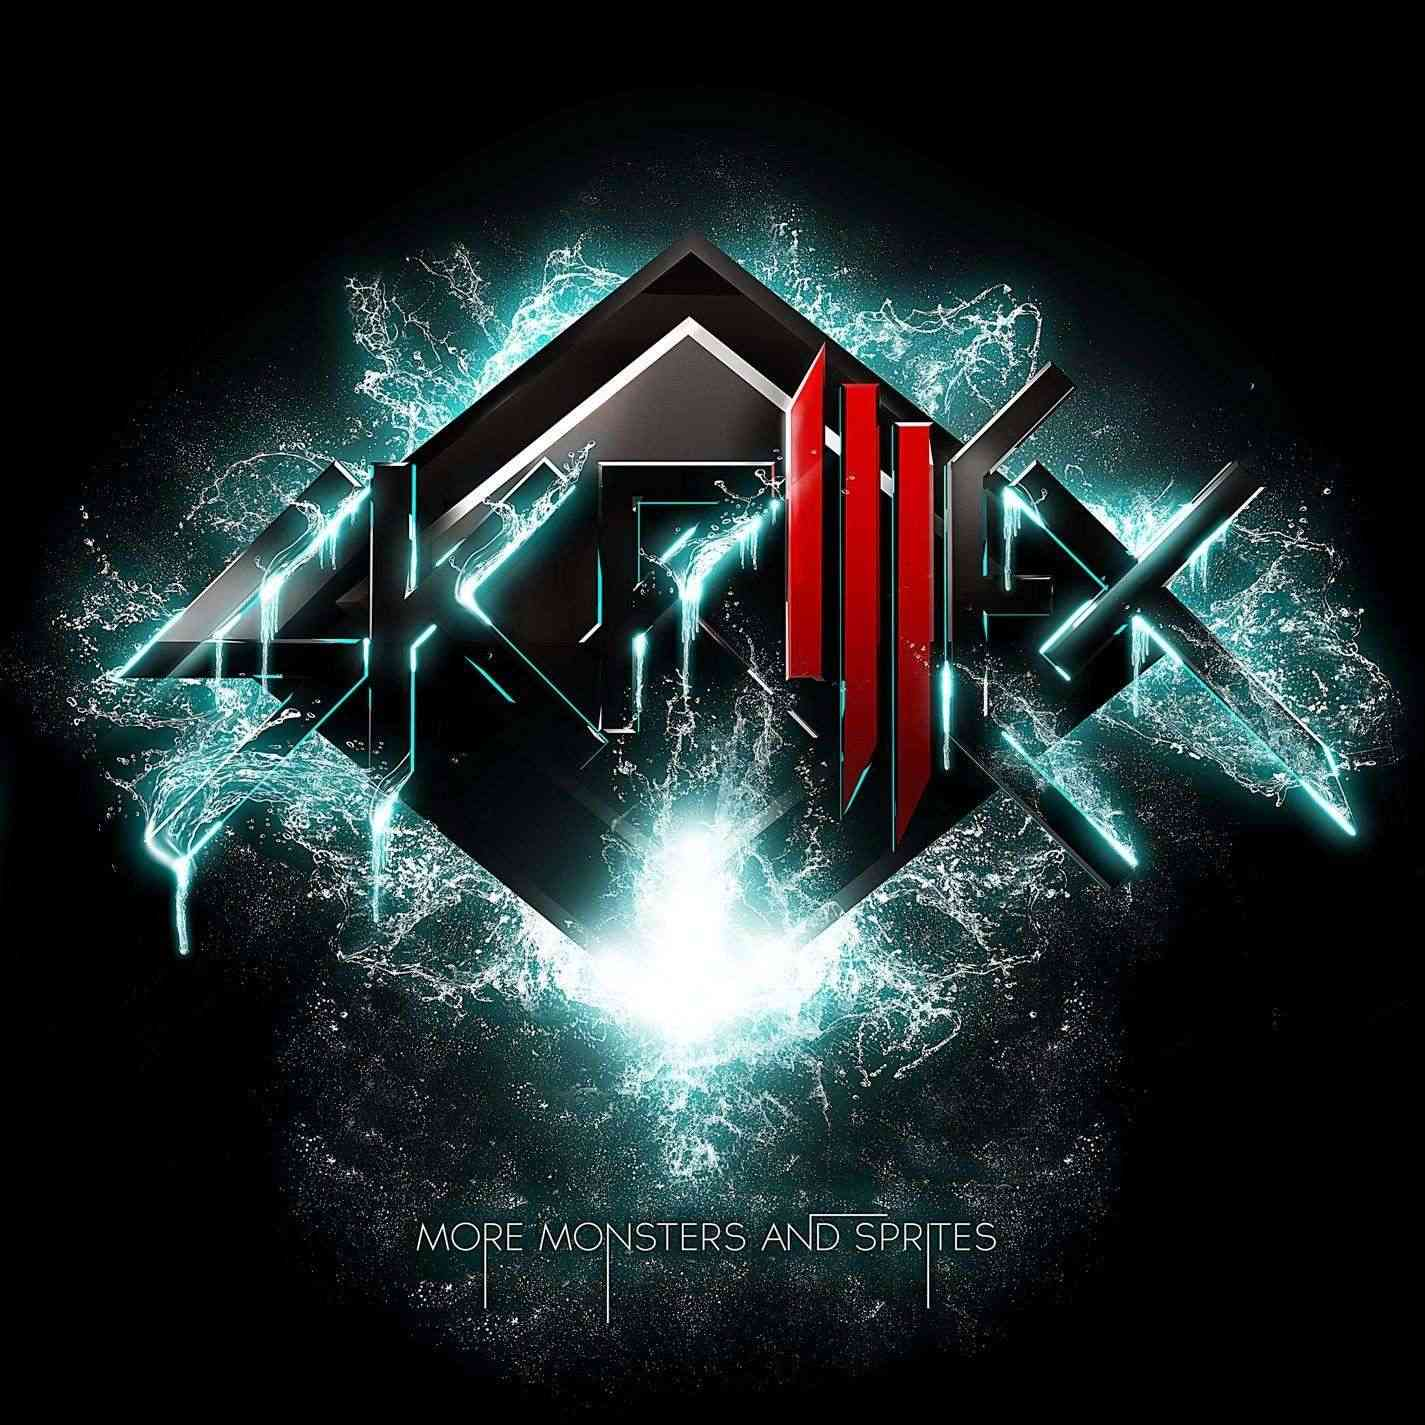 Skrillex - Scary Monsters And Nice Sprites (Kaskade Remix)